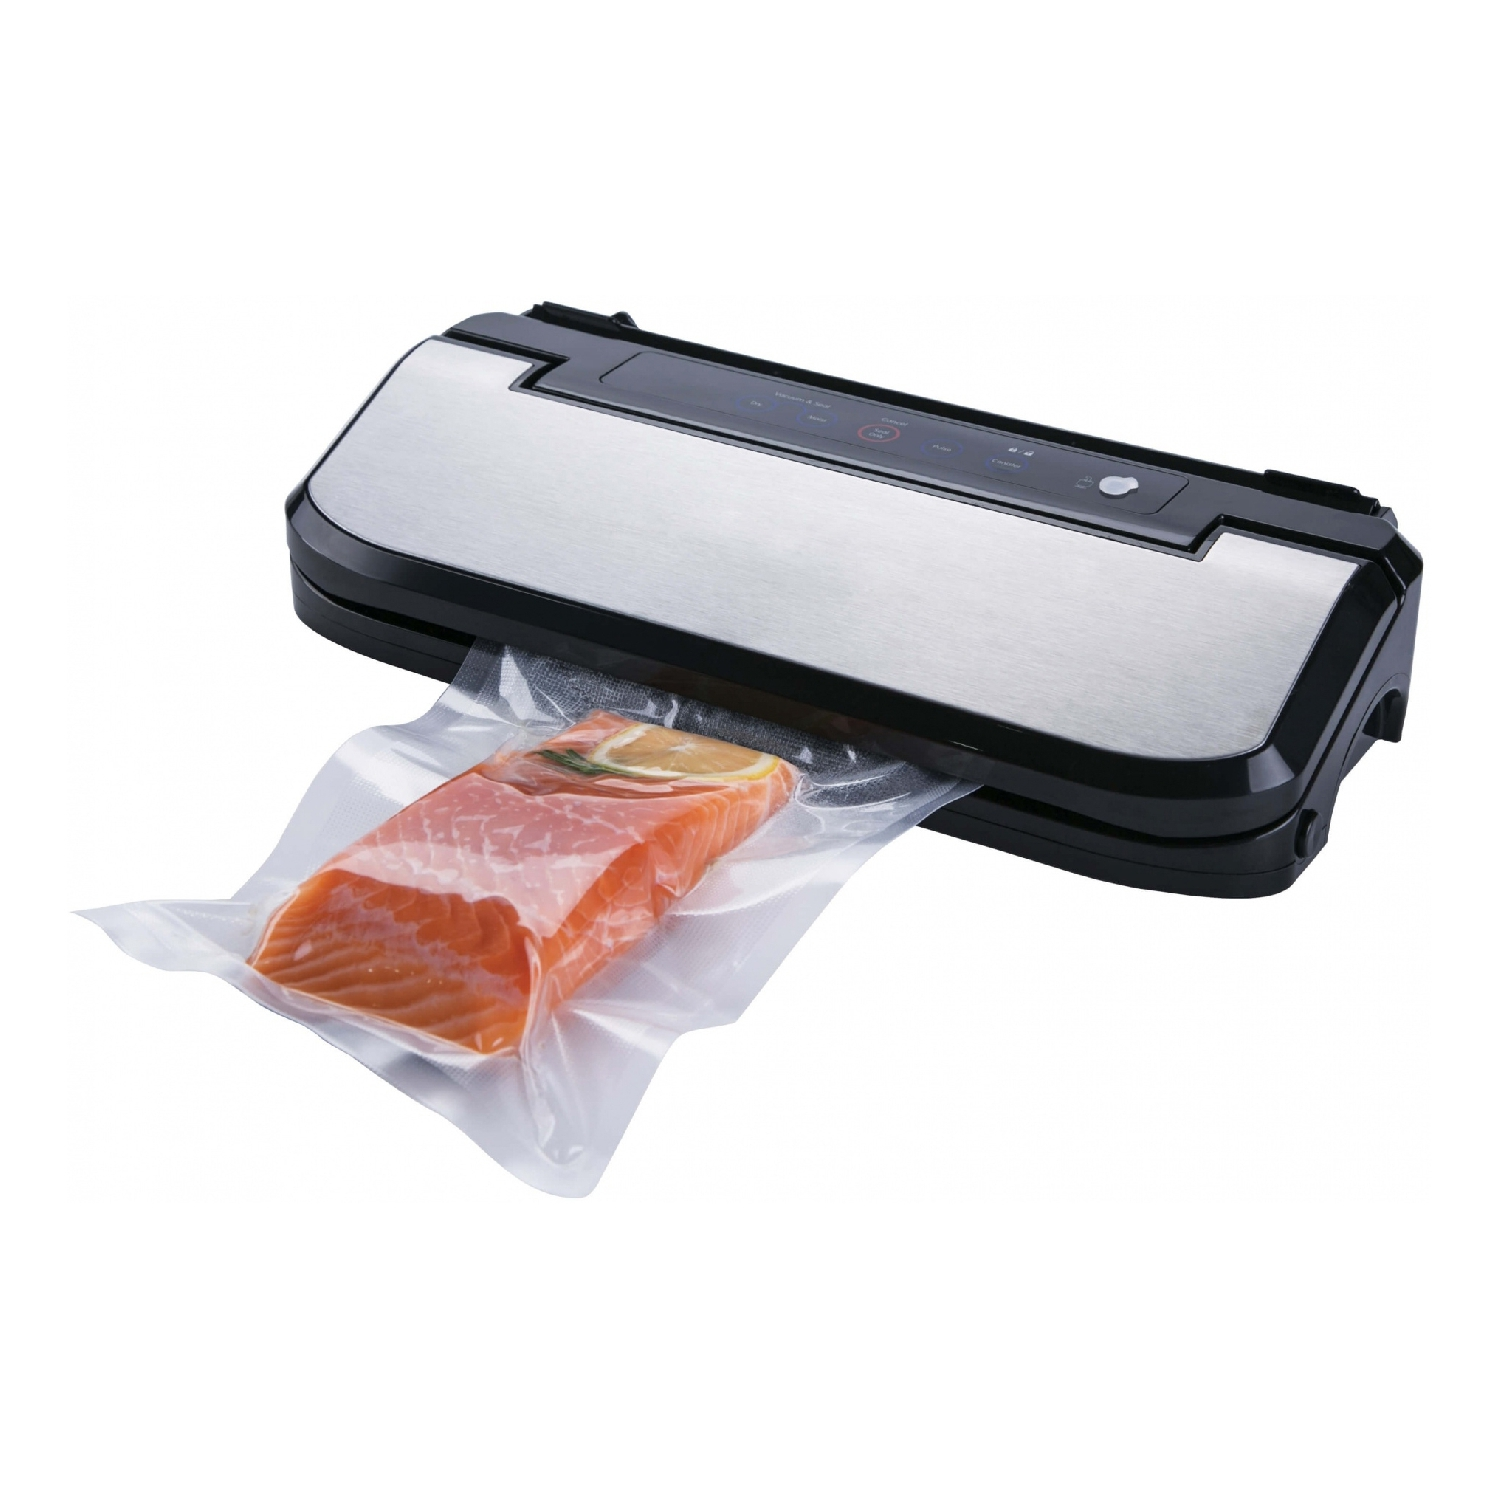 Vacuum sealer GEMLUX GL-VS-169S 110v 220v household food vacuum sealer packaging machine film sealer vacuum packer including bags parts sealing machine